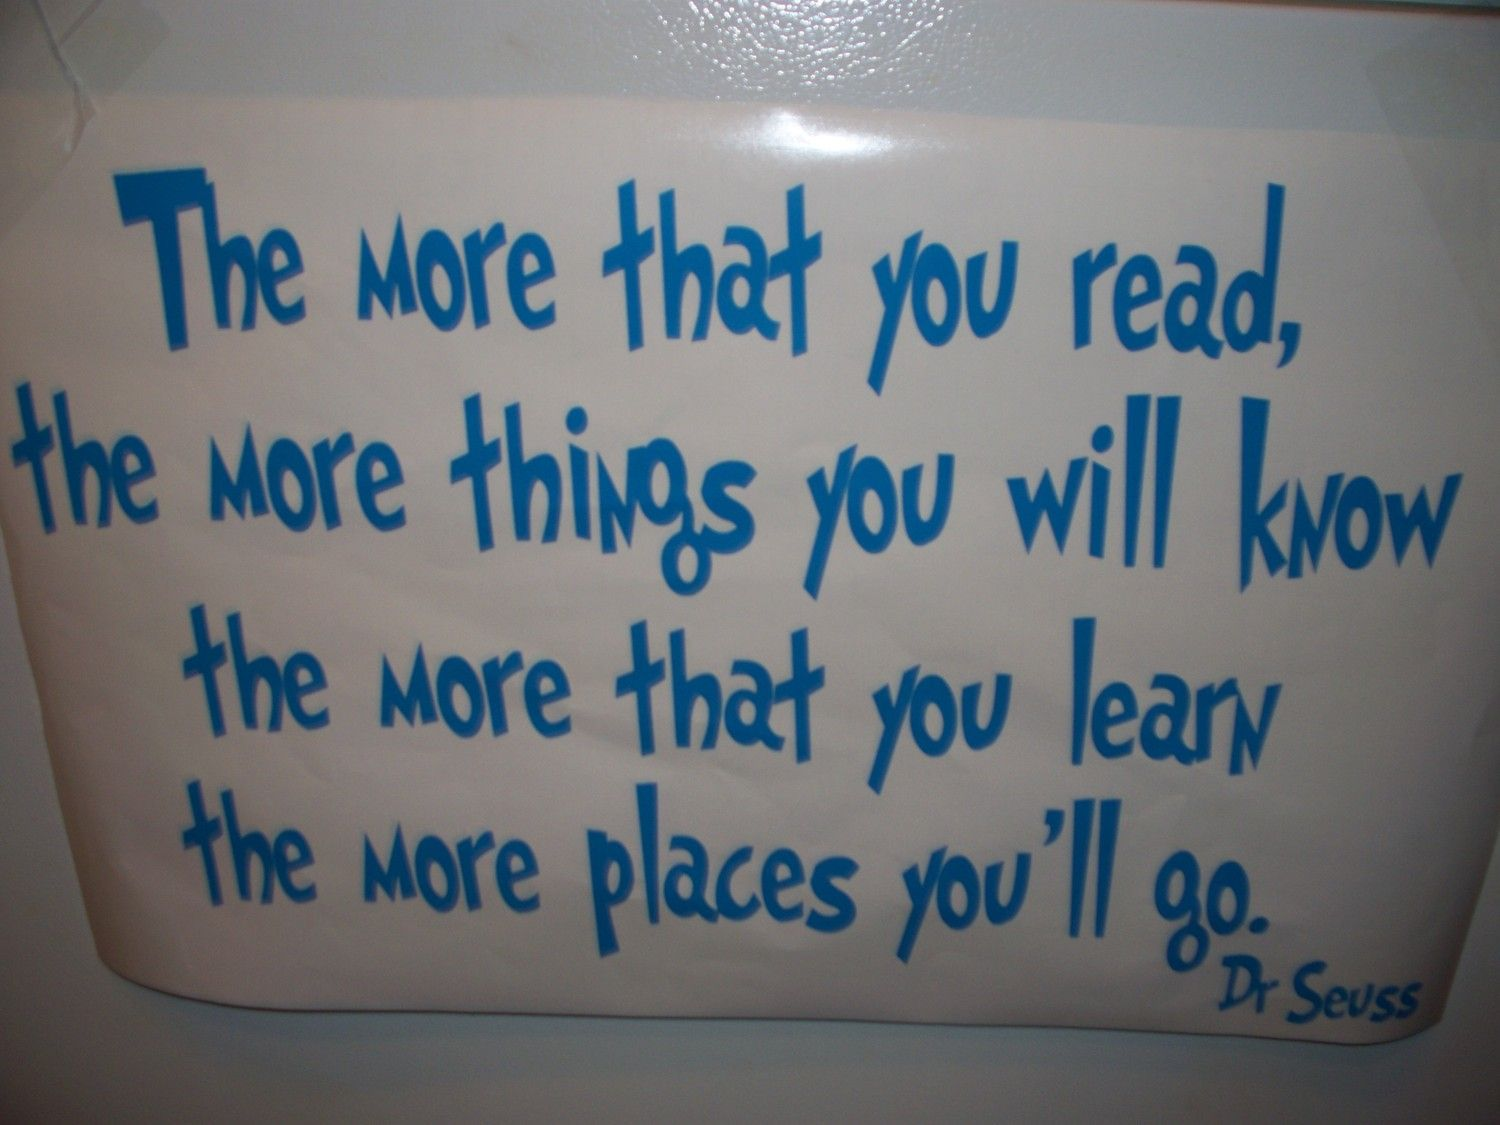 Dr Seuss Wall Decal The More That You Read Vinyl By